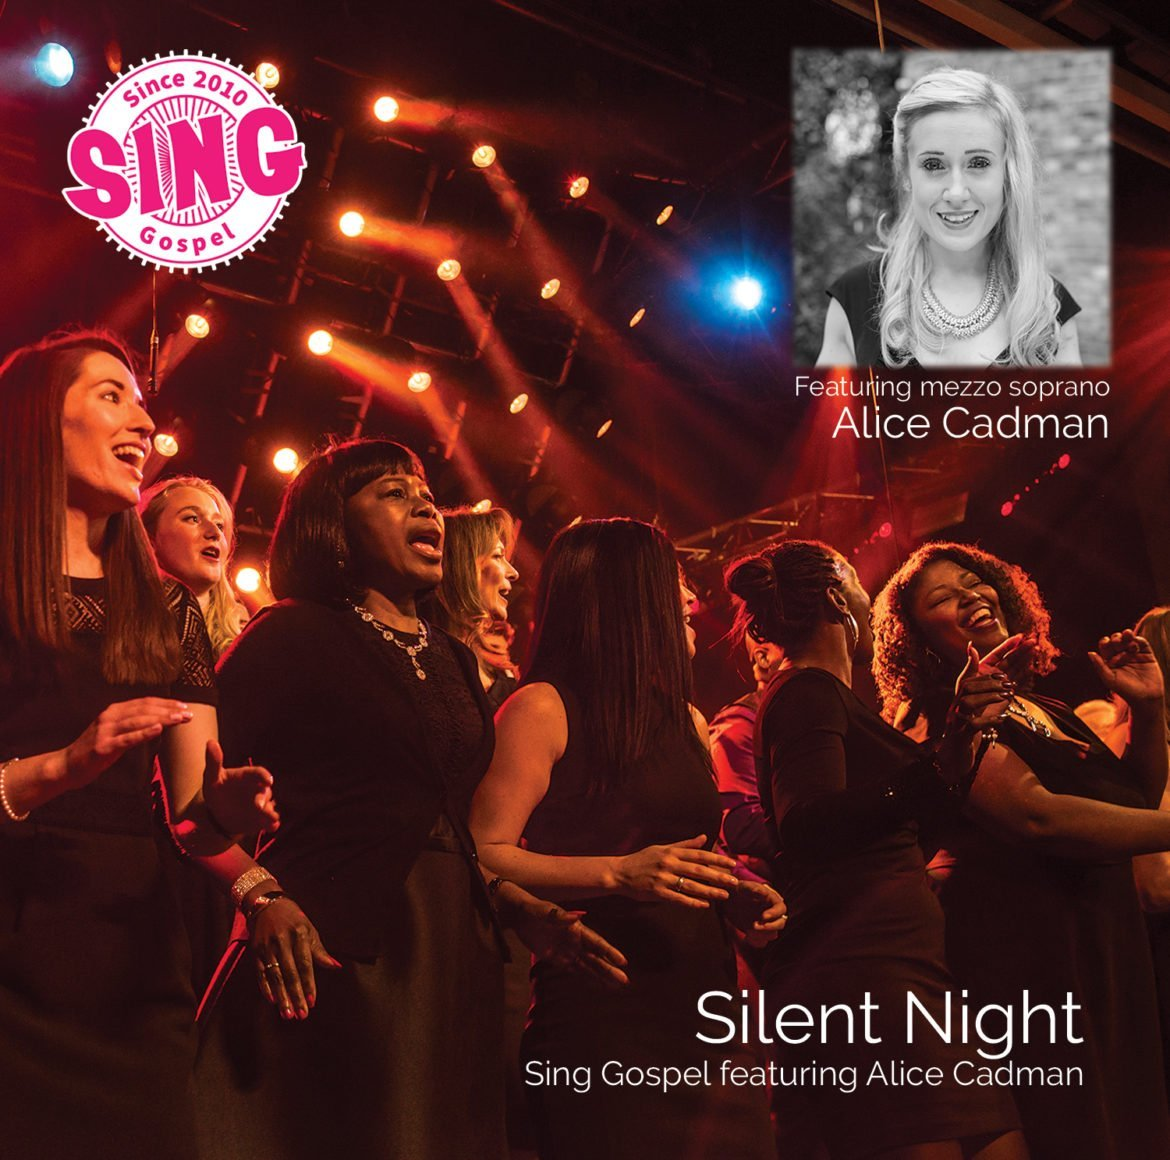 Silent Night - Single Artwork